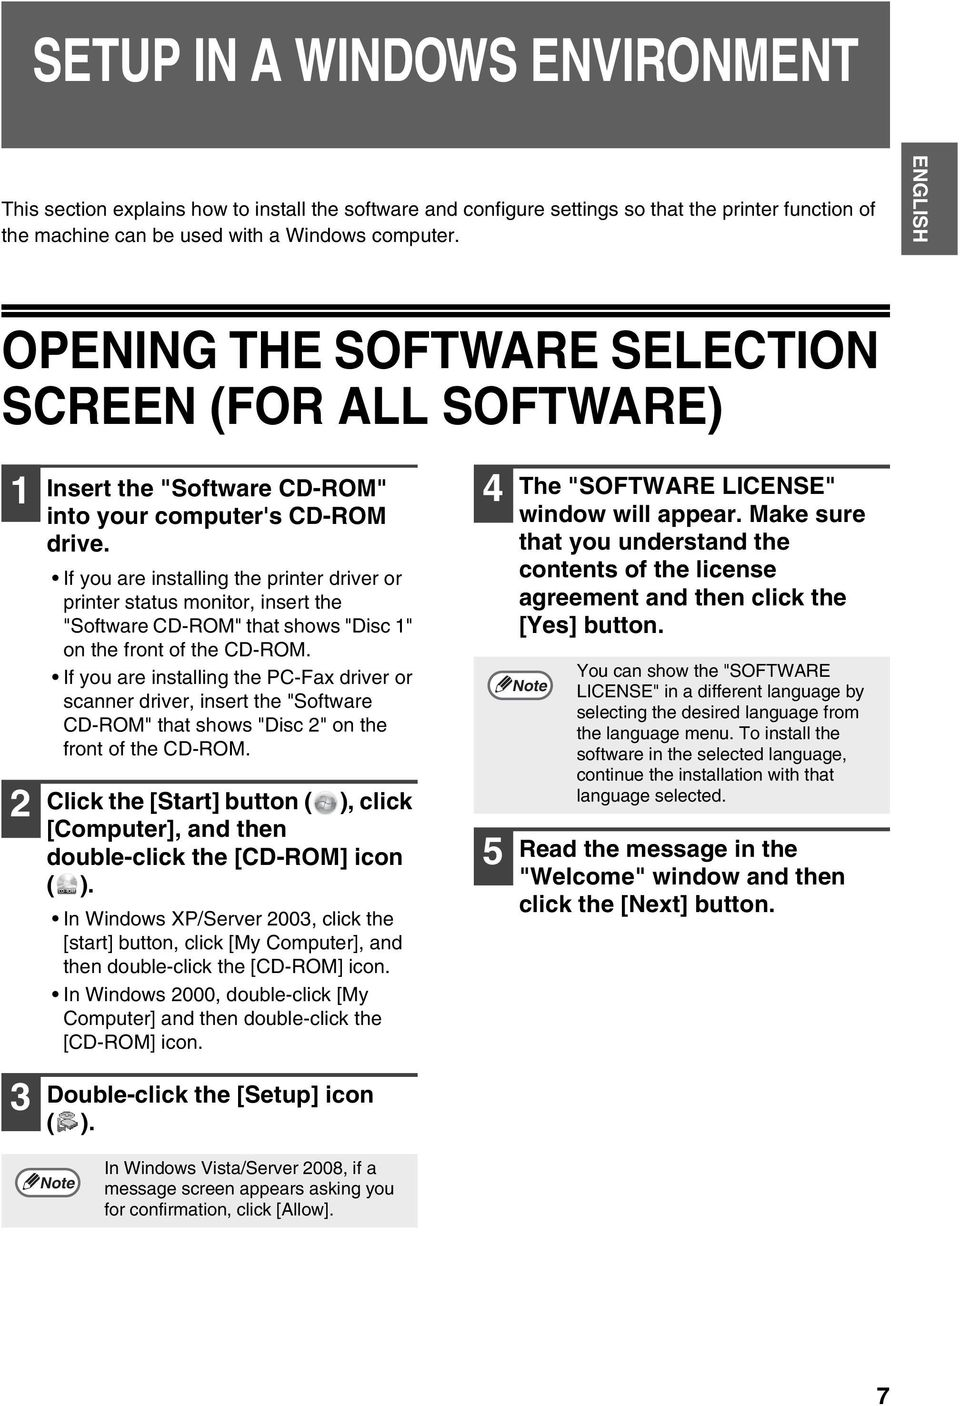 "If you are installing the printer driver or printer status monitor, insert the ""Software CD-ROM"" that shows ""Disc 1"" on the front of the CD-ROM."